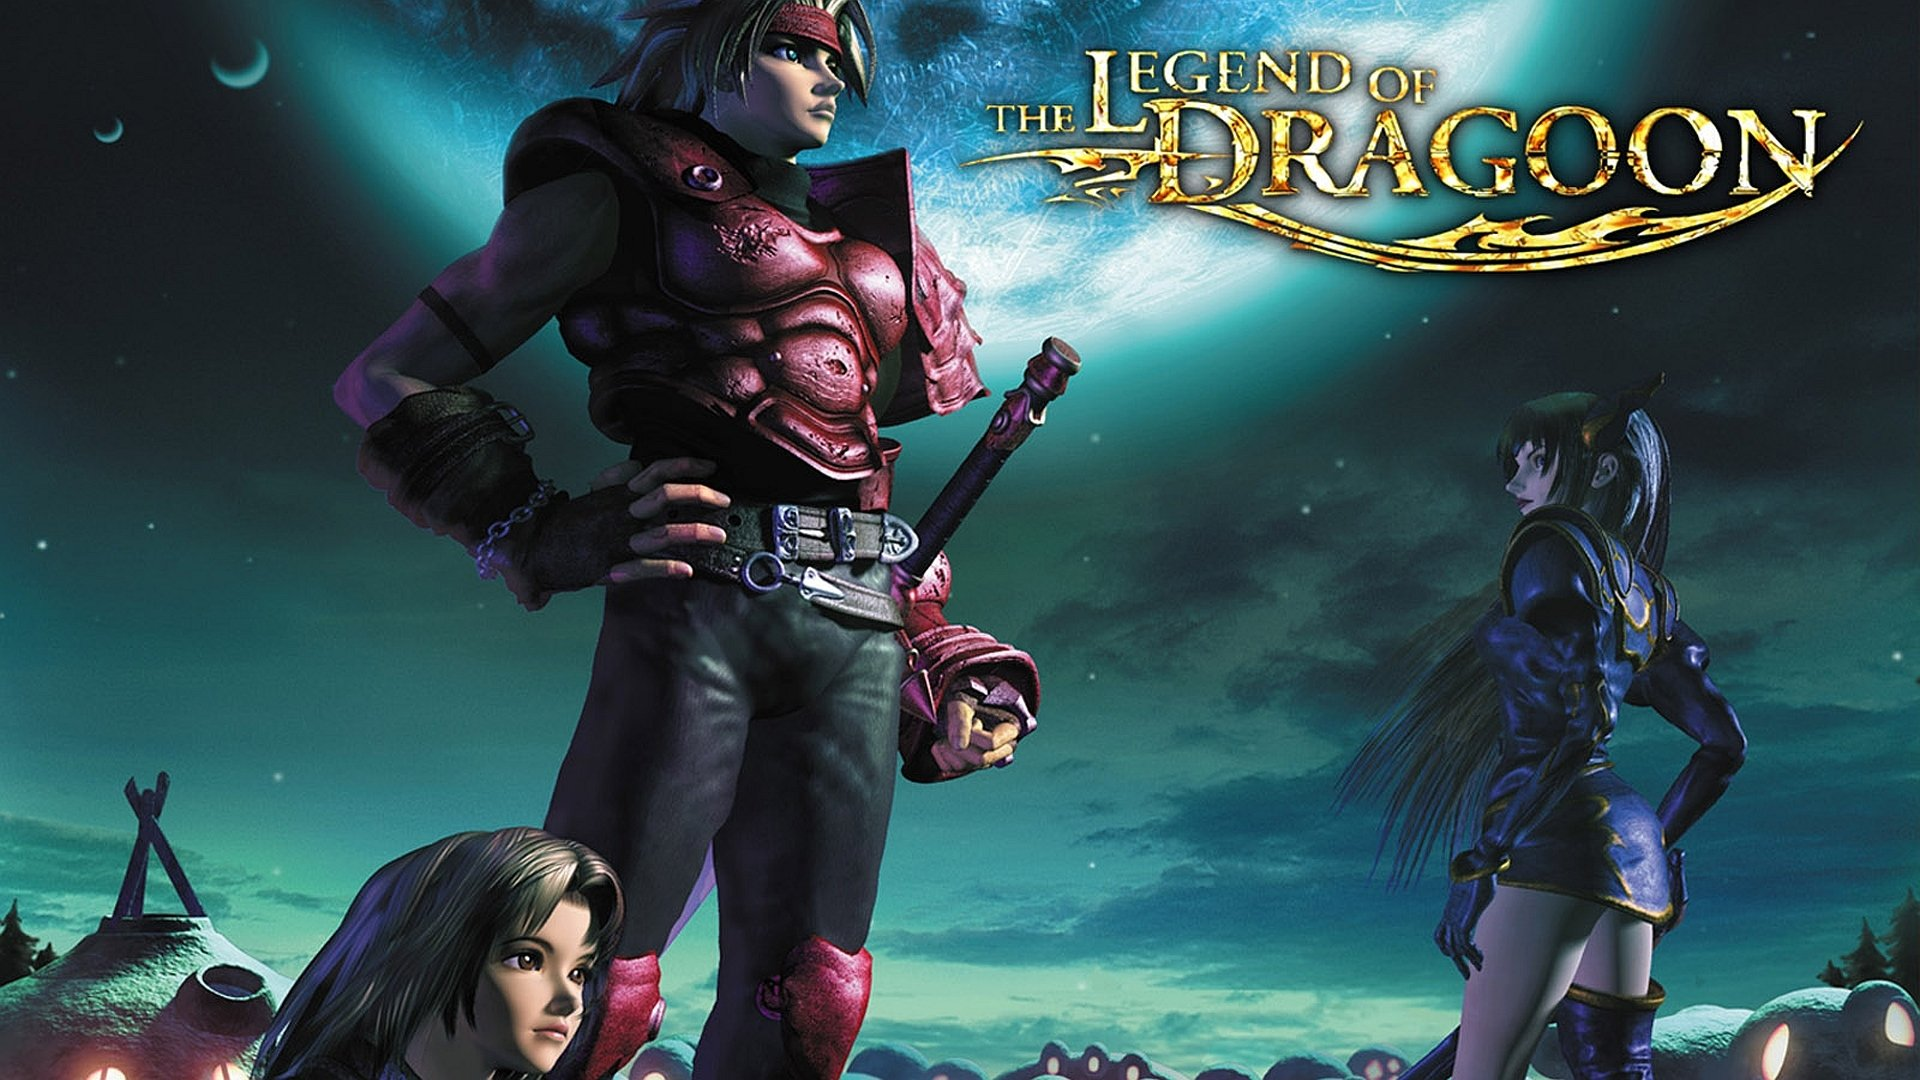 Legend Of Dragoon Full Hd Wallpaper And Background Image  1920x1080  Id490556